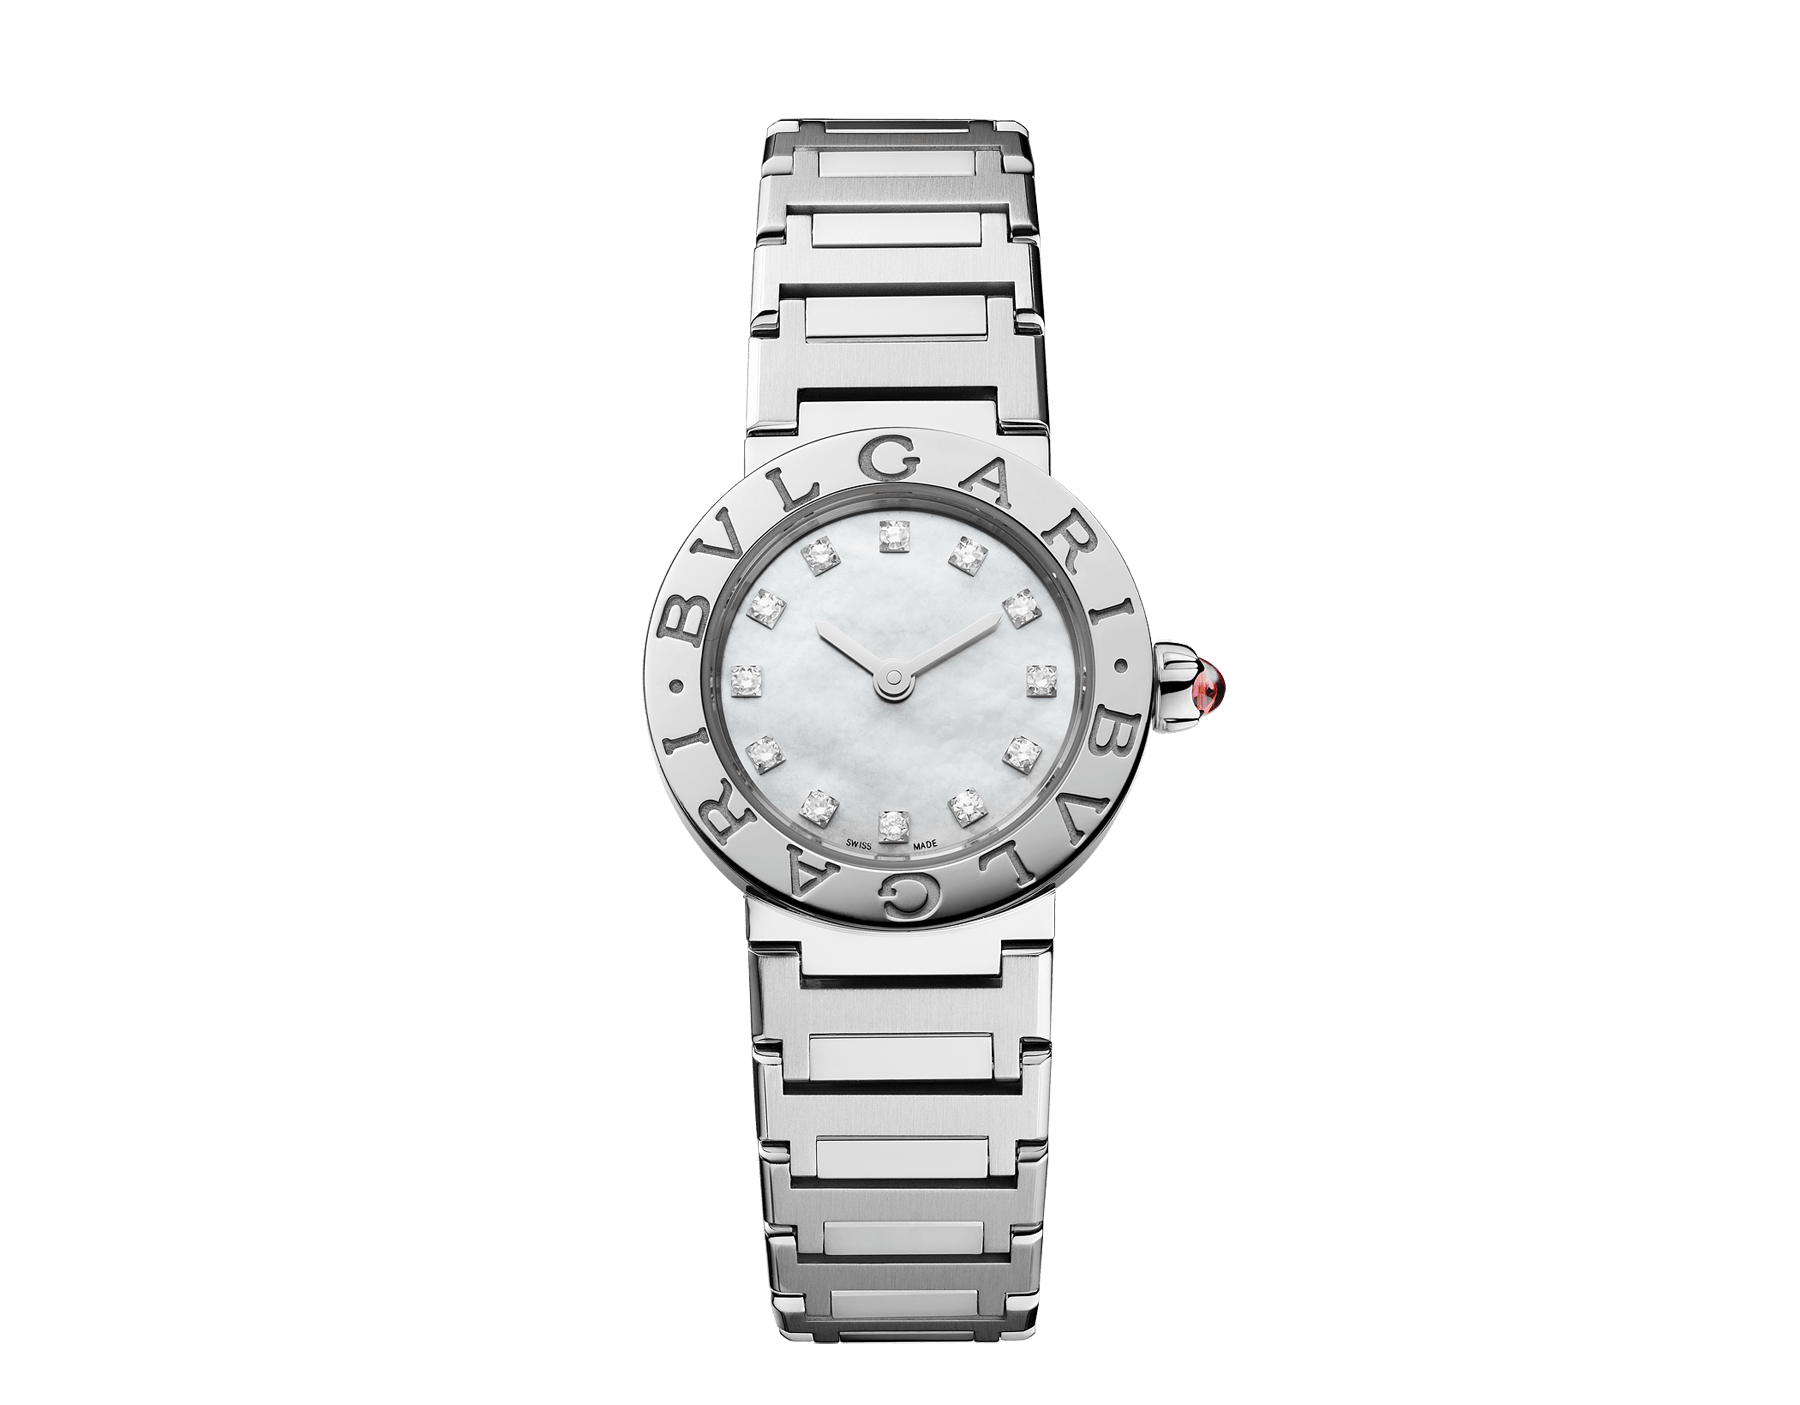 BVLGARI BVLGARI LADY watch in stainless steel case and bracelet, stainless steel bezel engraved with double logo, white mother-of-pearl dial and diamond indexes 103095 image 1